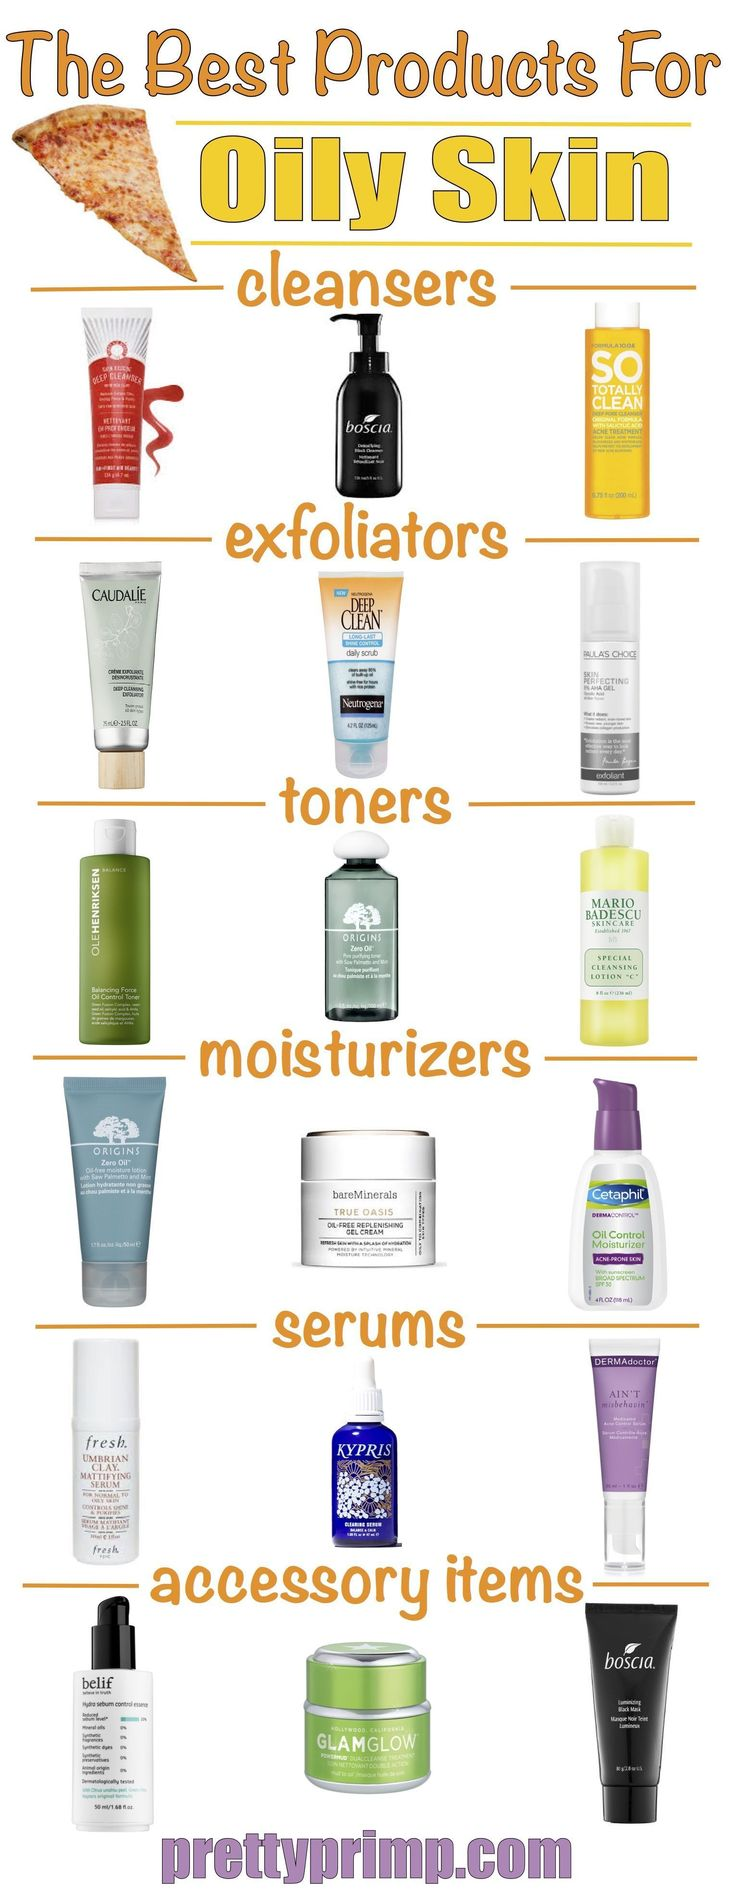 Skincare for oily skin, including the best drugstore and high end products, specifically, cleansers, exfoliators, toners, moisturizers, serums, and more for oily skin! #facialcleanserdrugstore #moisturizerdrugstore